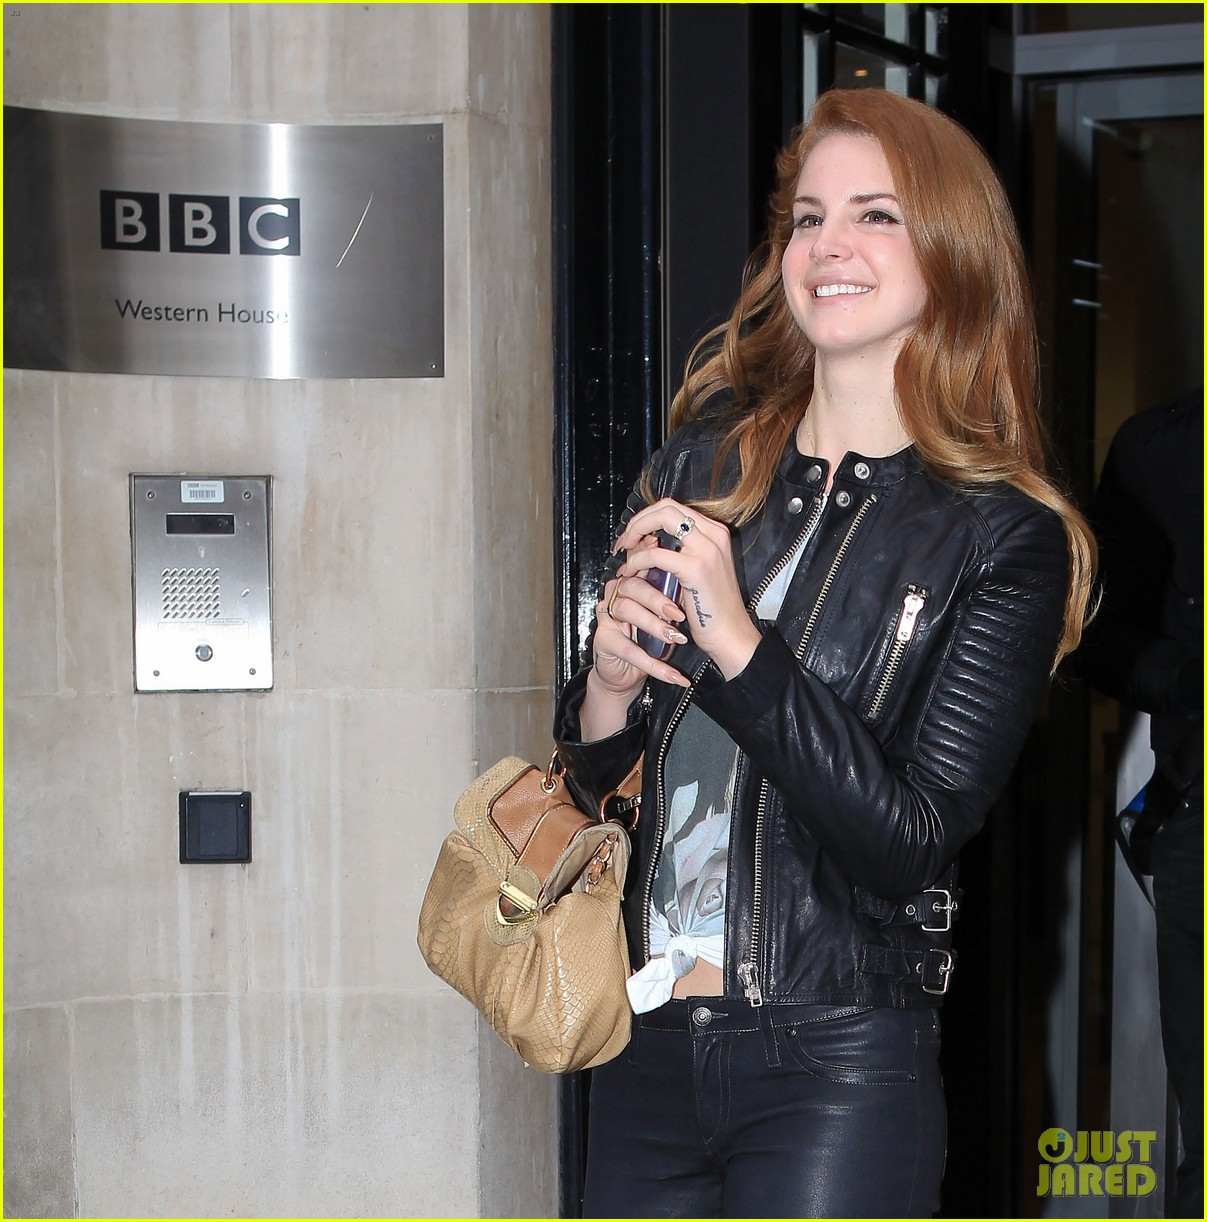 Lana Del Rey Bbc Radio Visit Photo 2621466 Lana Del Rey Pictures Just Jared